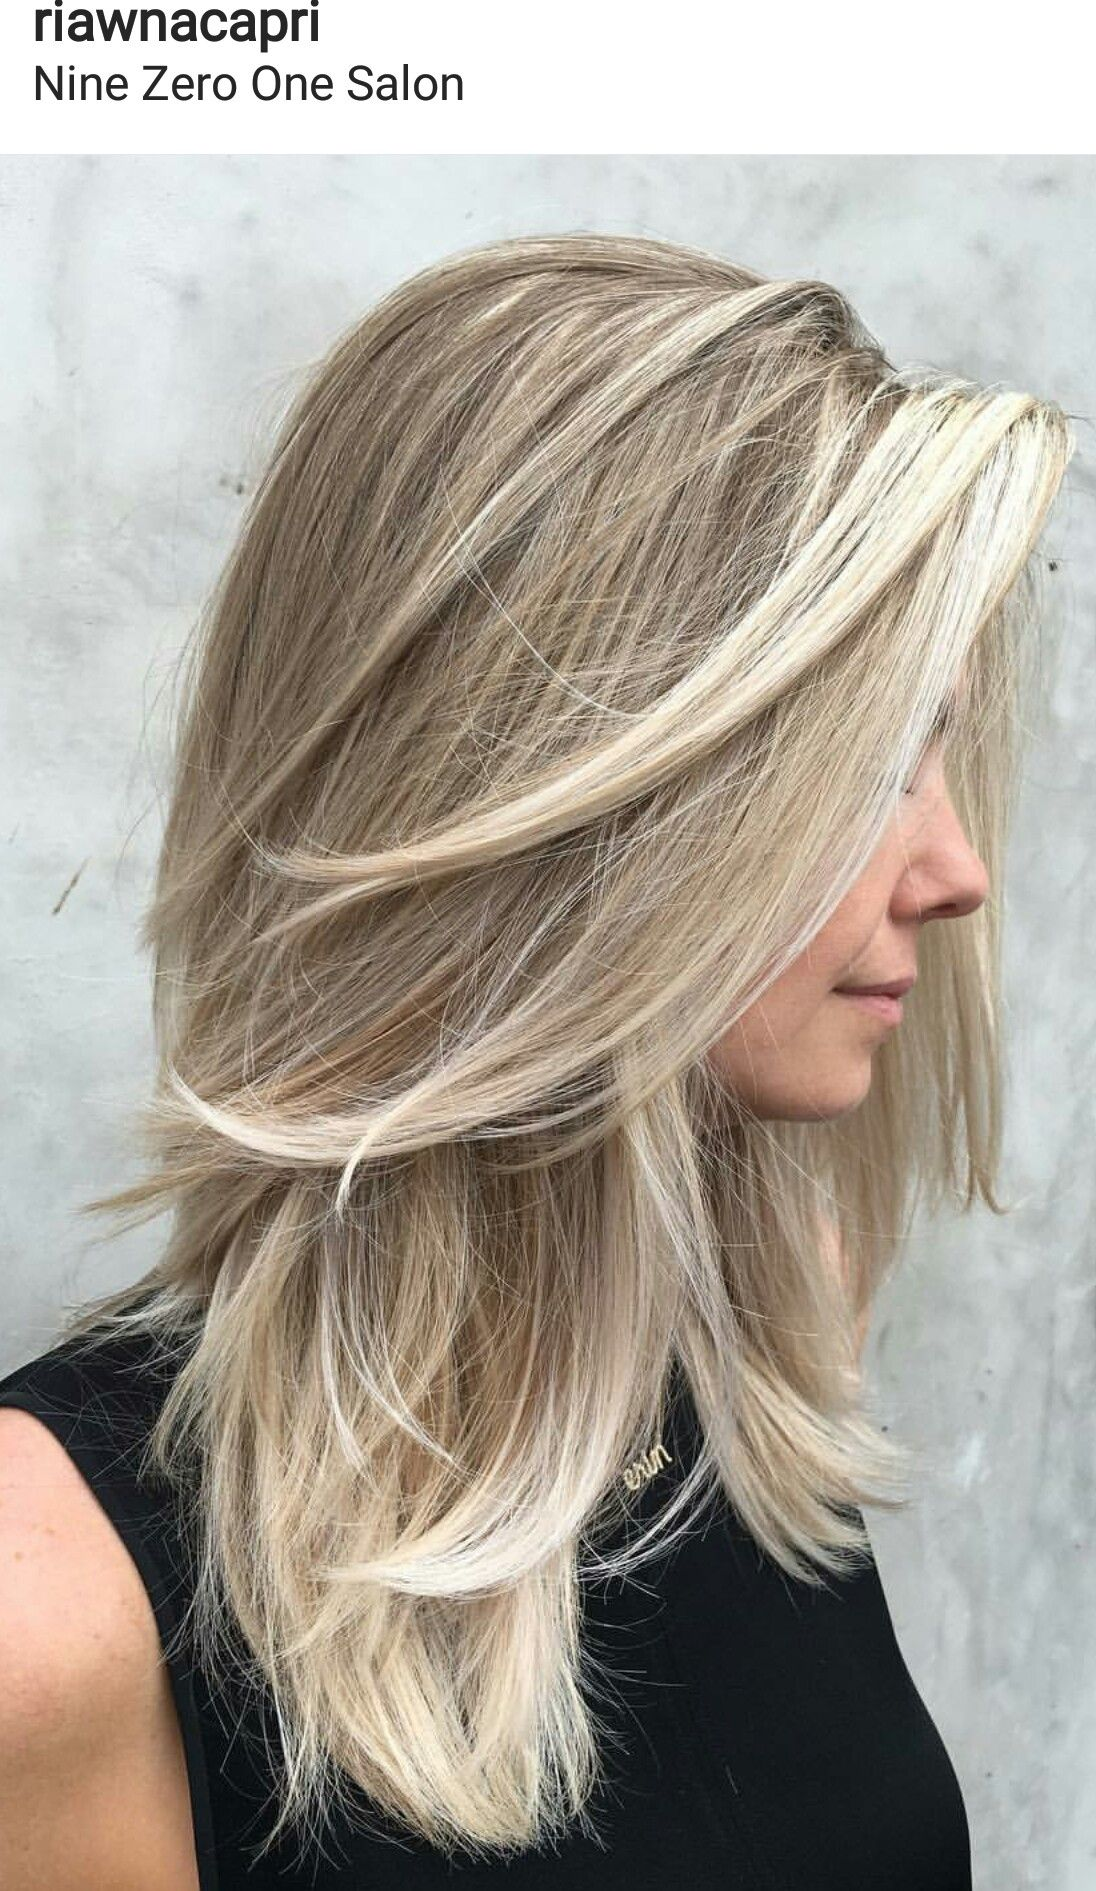 Love this layered look httpgurlrandomizertumblrpost i like the layers idea layered haircuts for long hair 57 winobraniefo Image collections